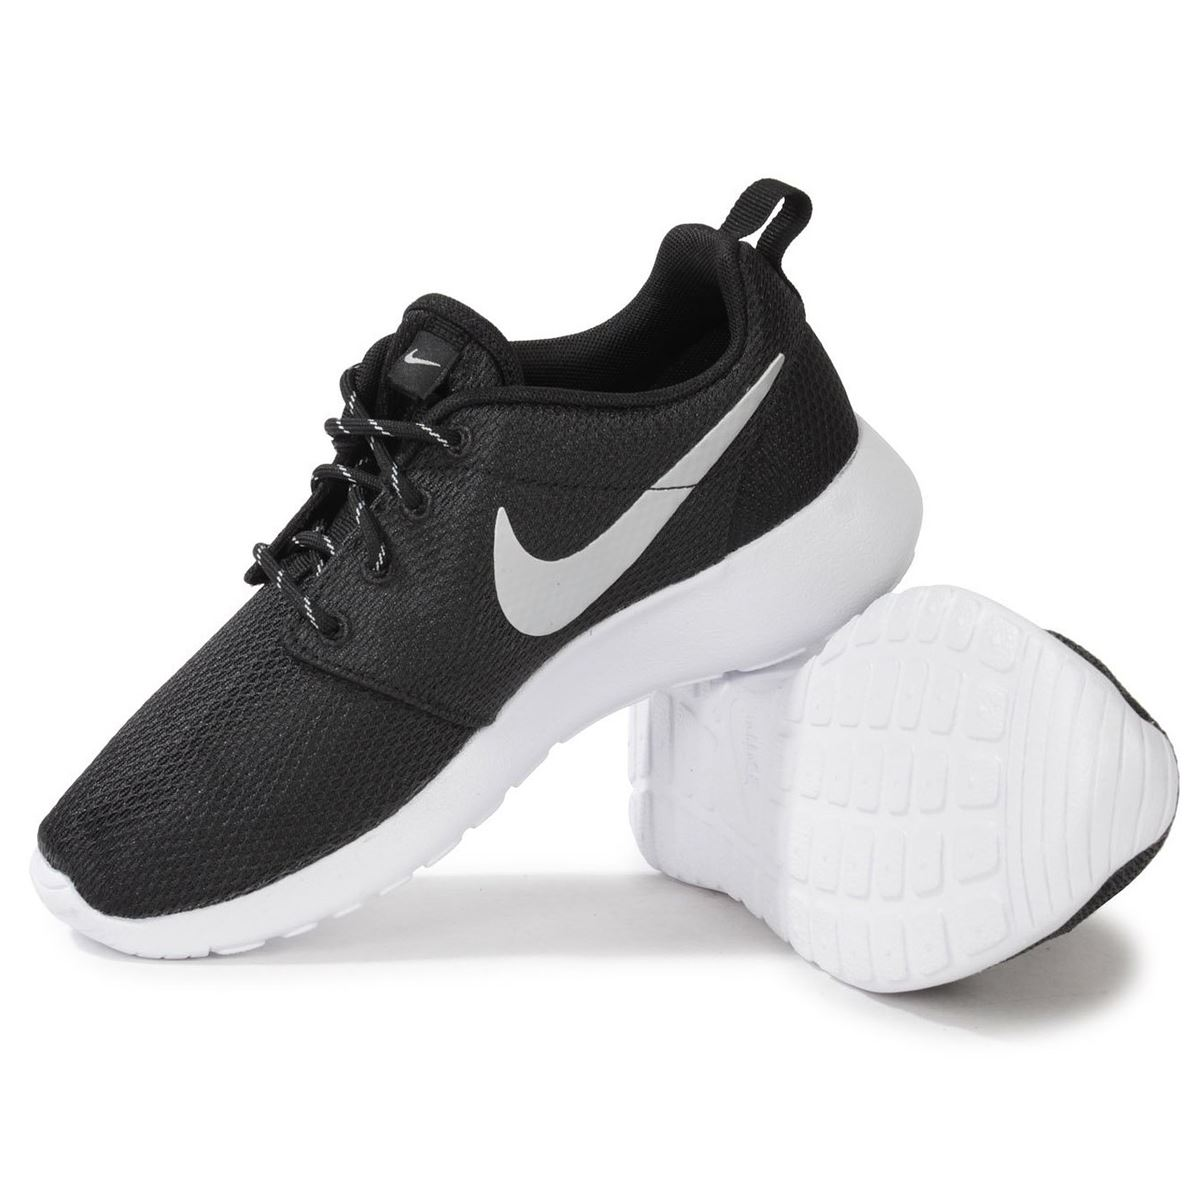 Nike Roshe Run Black White Womens Trainers | eBay